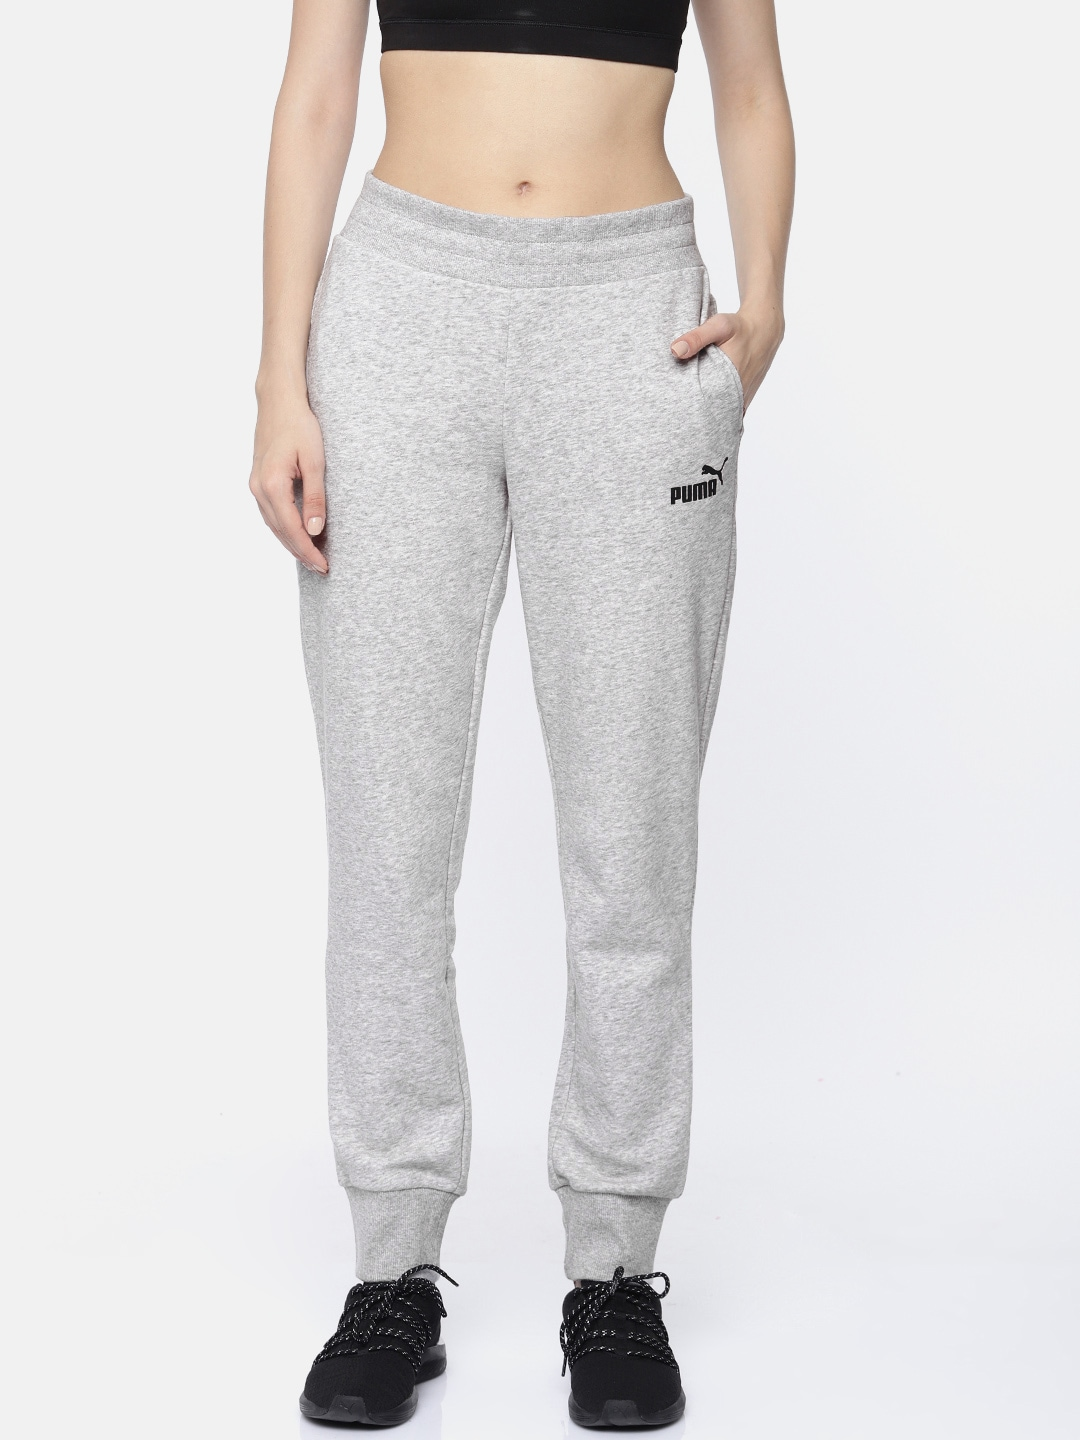 a12e0df50b37 Puma Womens Track Pants - Buy Puma Womens Track Pants online in India